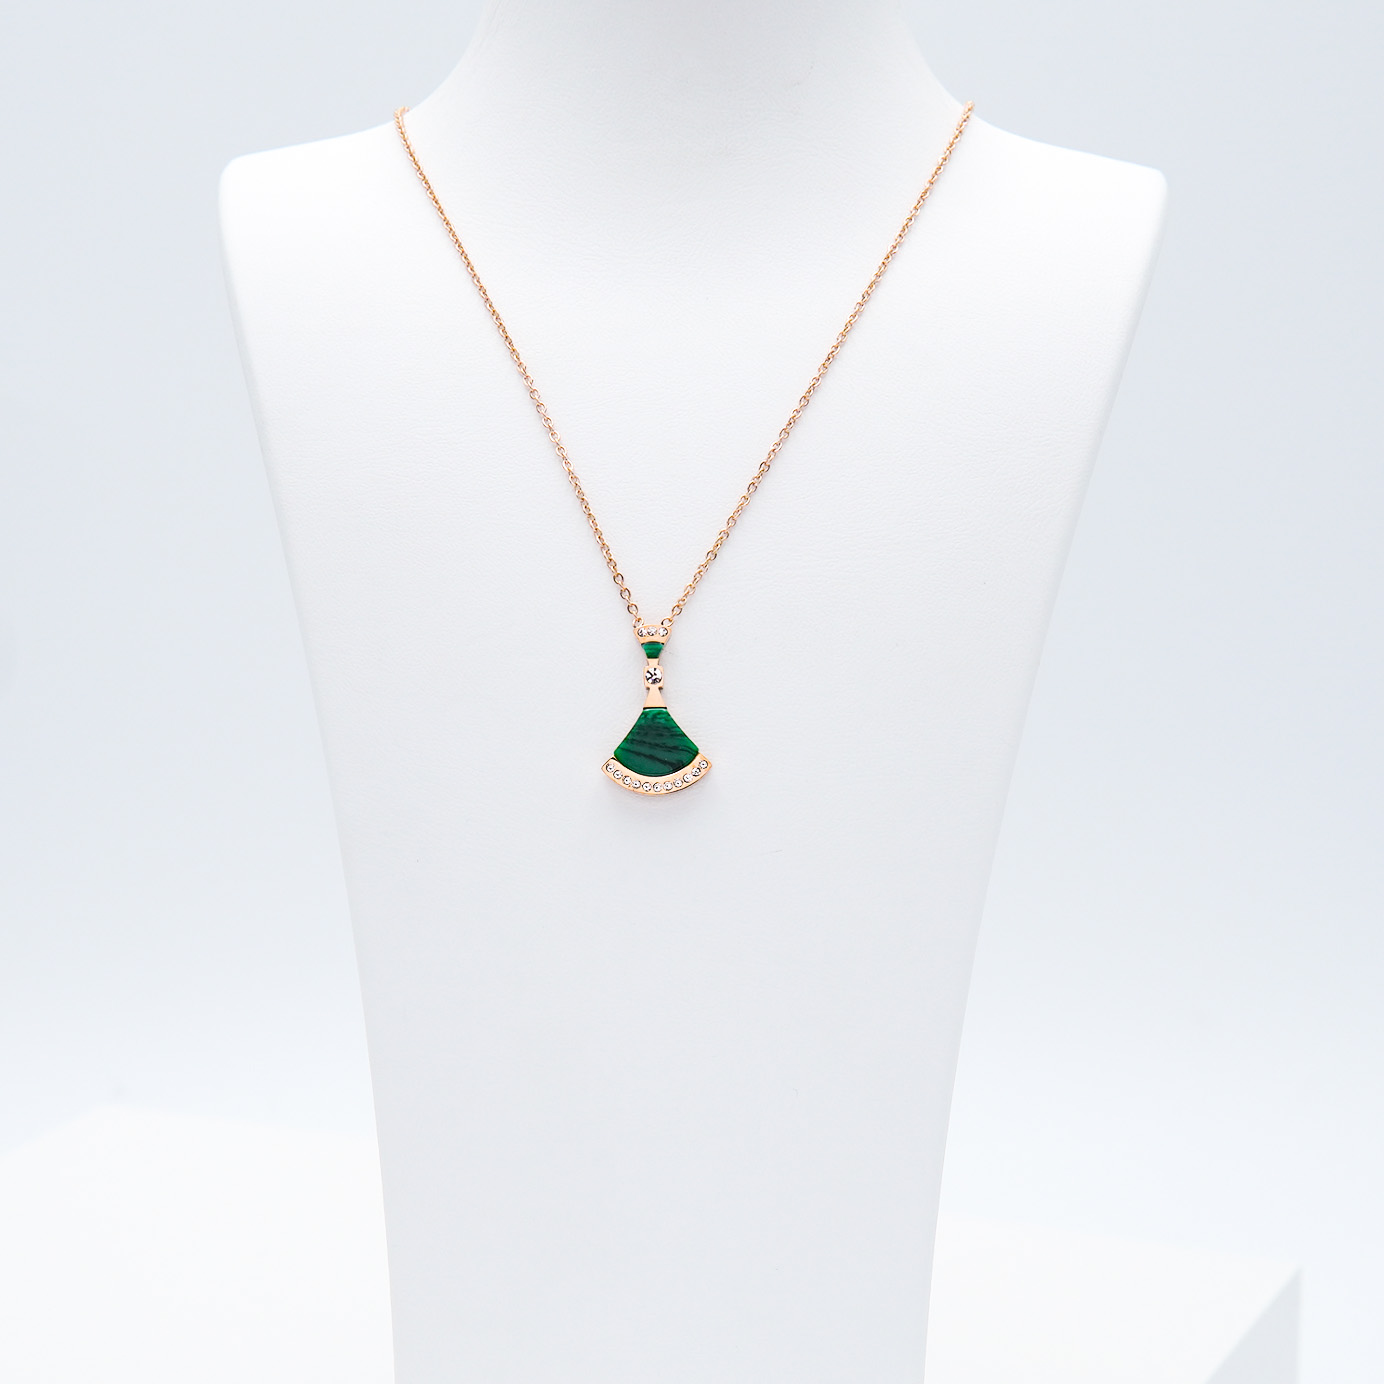 1- Elixir - Gold Edition Halsband Modern and trendy Necklace and women jewelry and accessories from SWEVALI fashion Sweden